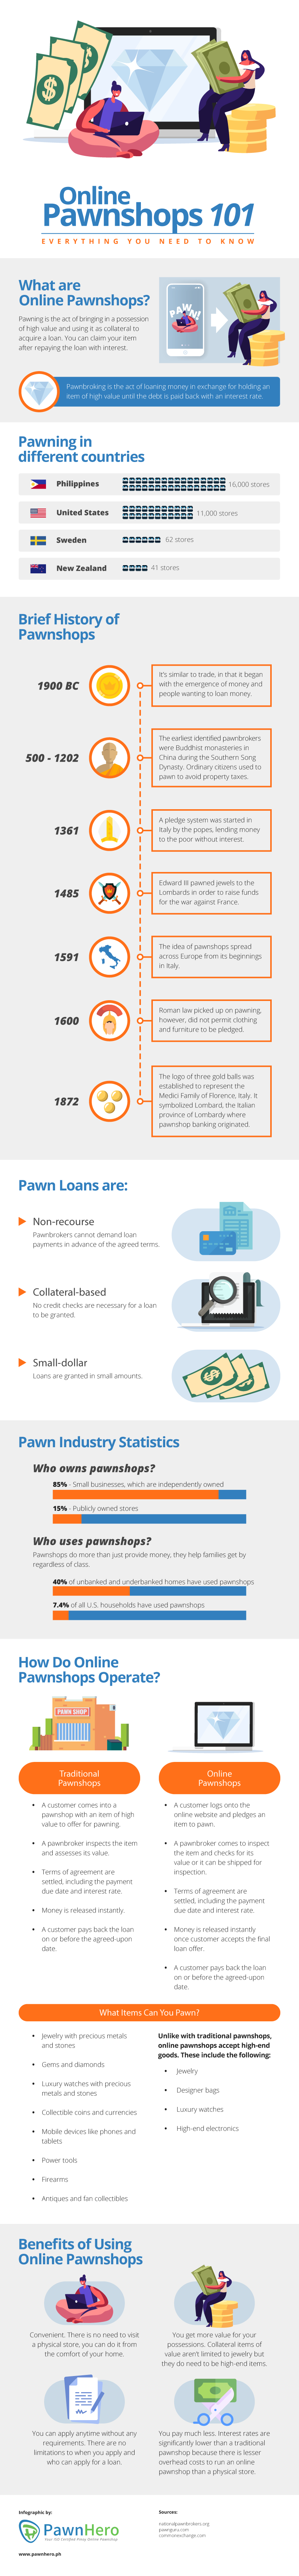 Online pawnshops revolutionize the age-old tradition of pawning for the digital age, offering a better, faster, and more convenient alternative to bank loans.